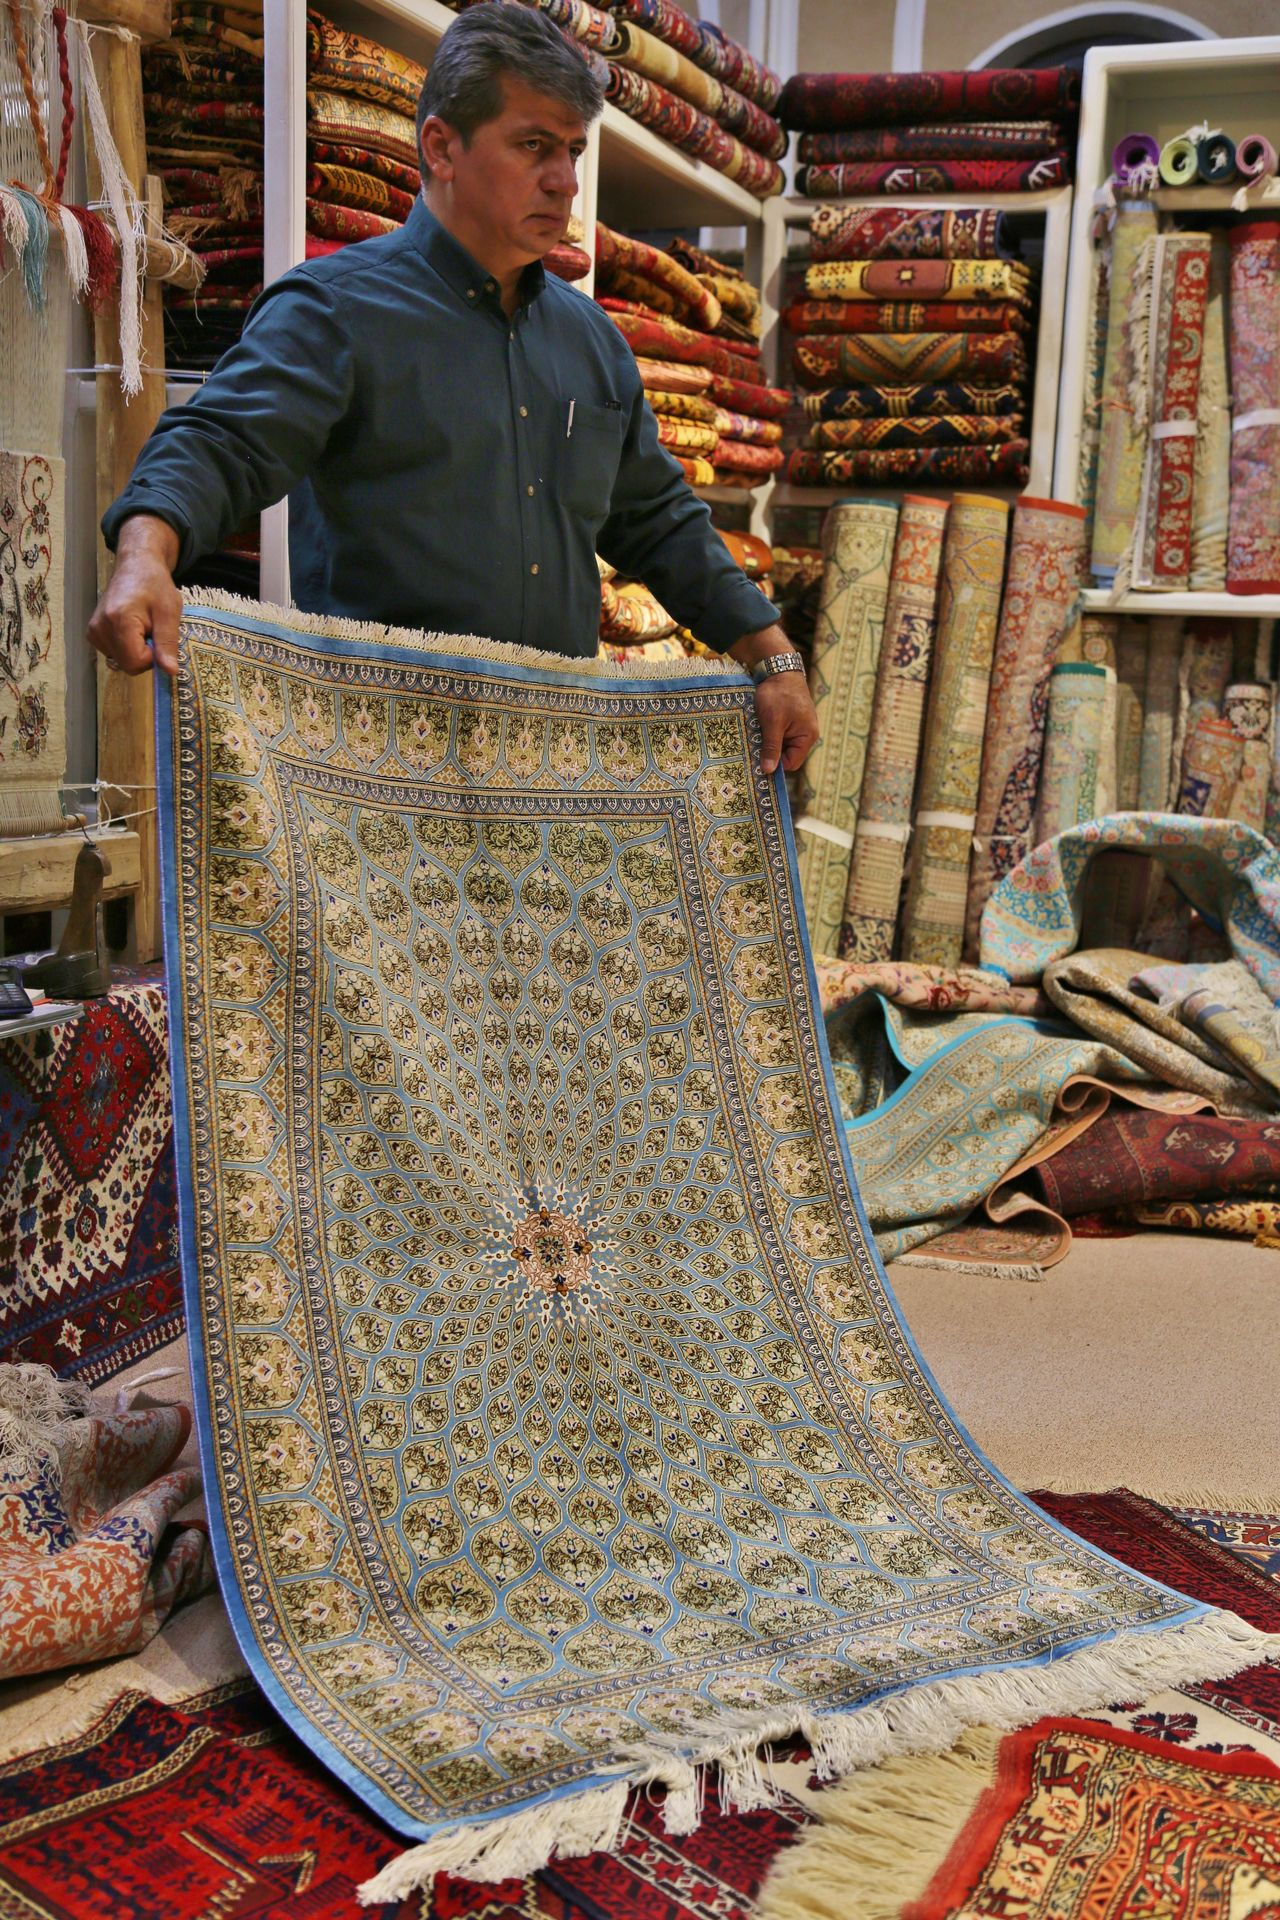 Iranian Carpets Real People One Person Mature Adult Only Men Adults Only Food Working Outdoors Men People Day Occupation One Man Only Adult Cultures Travel Color Photography